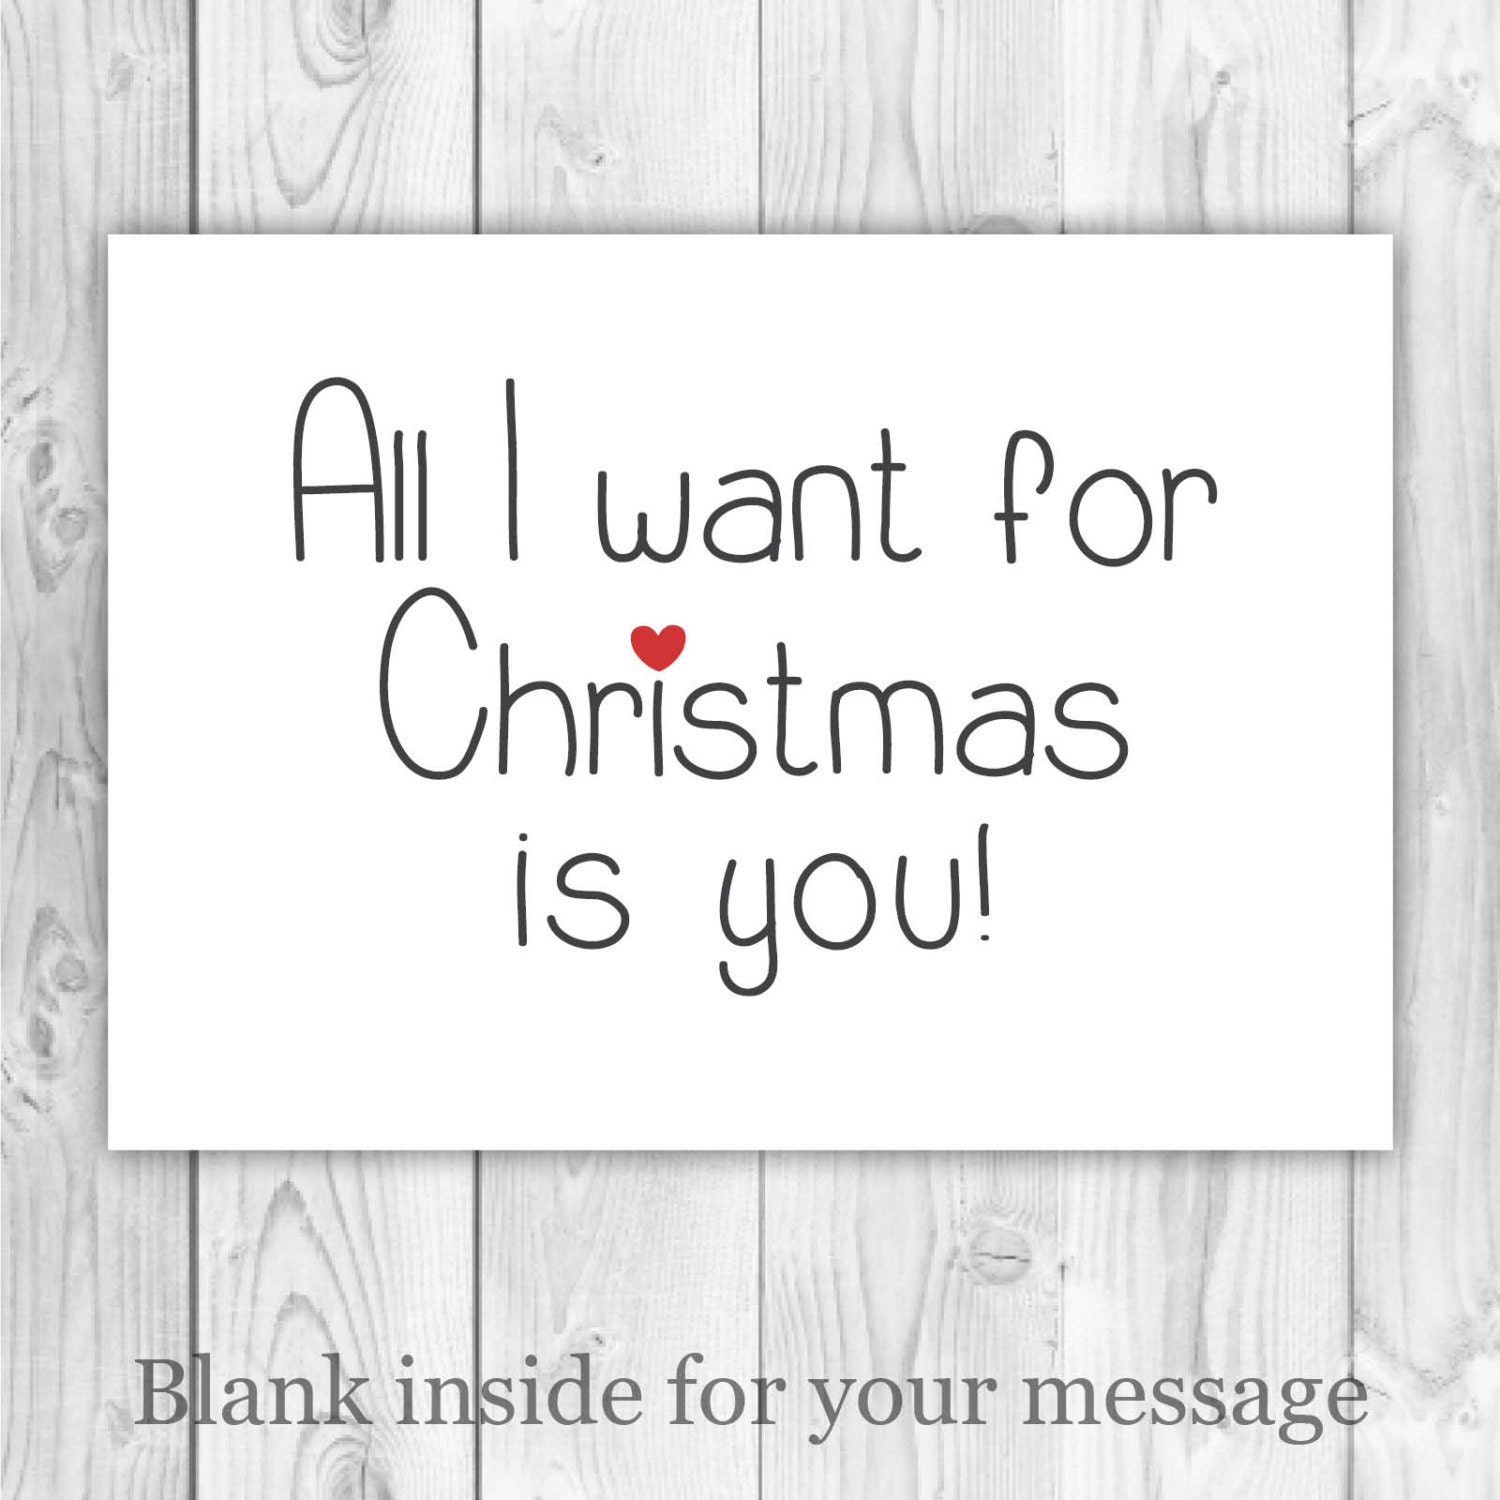 Fun Christmas Card All I want for Christmas is you